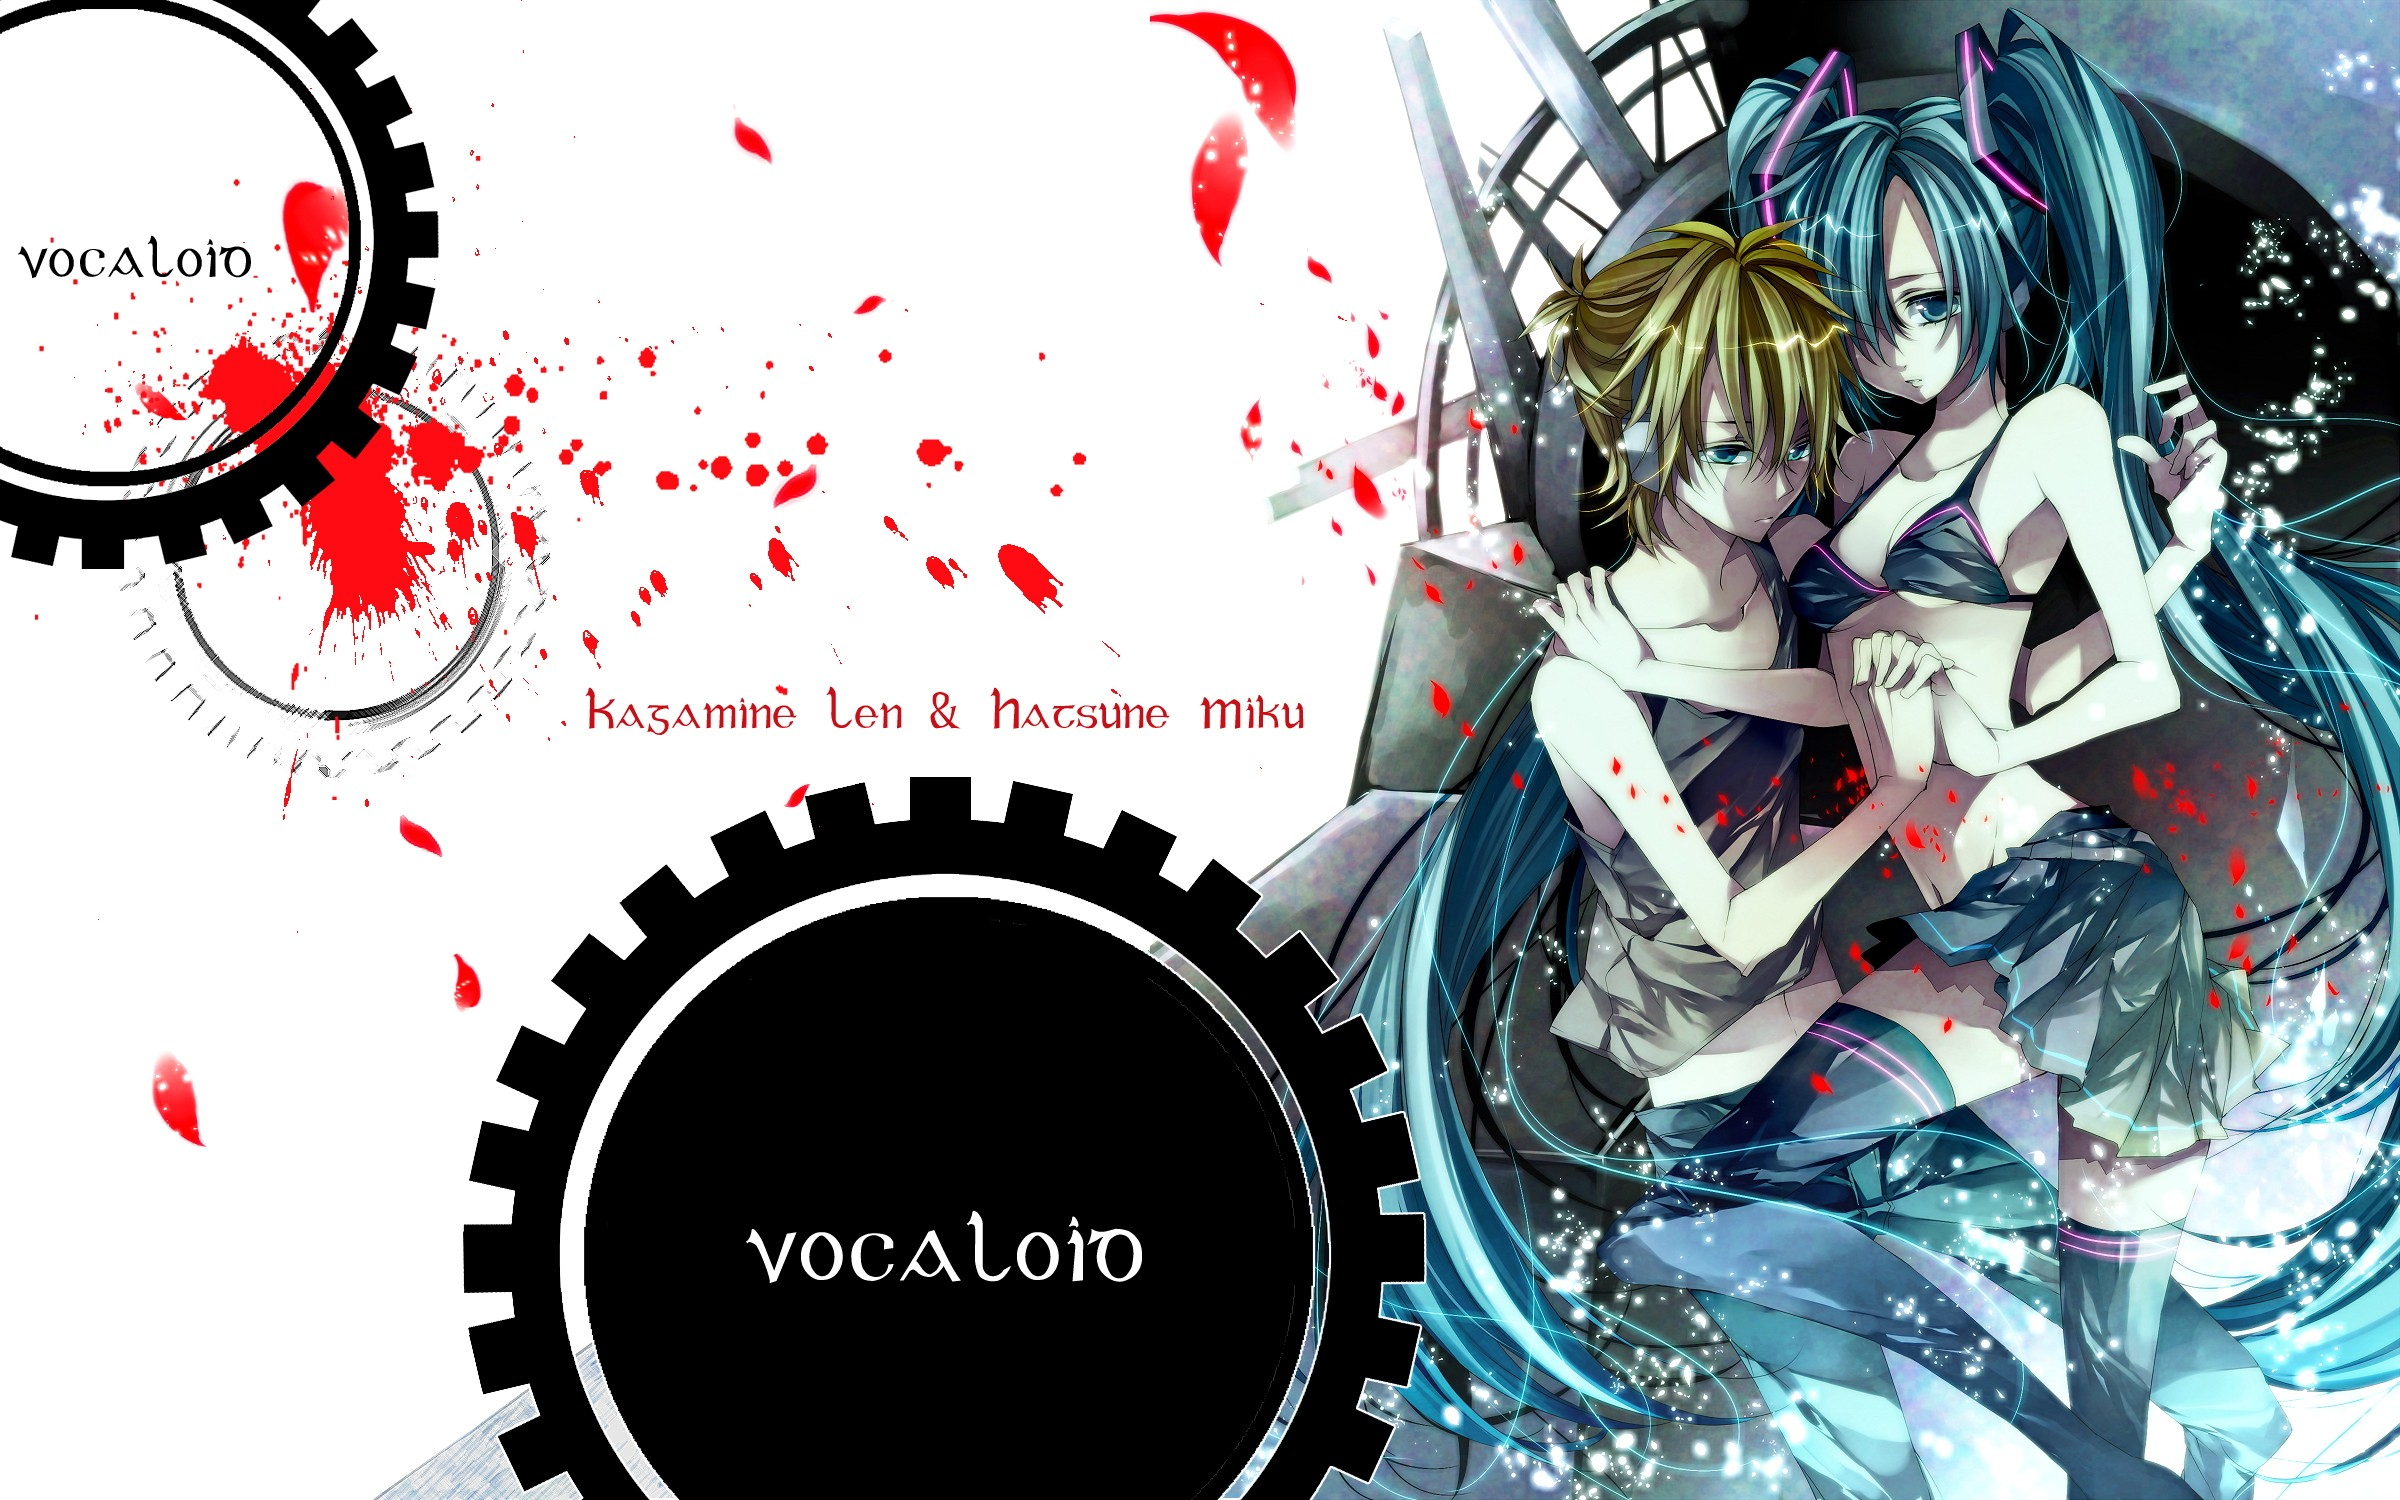 headphones blondes pants vocaloid HD Wallpaper